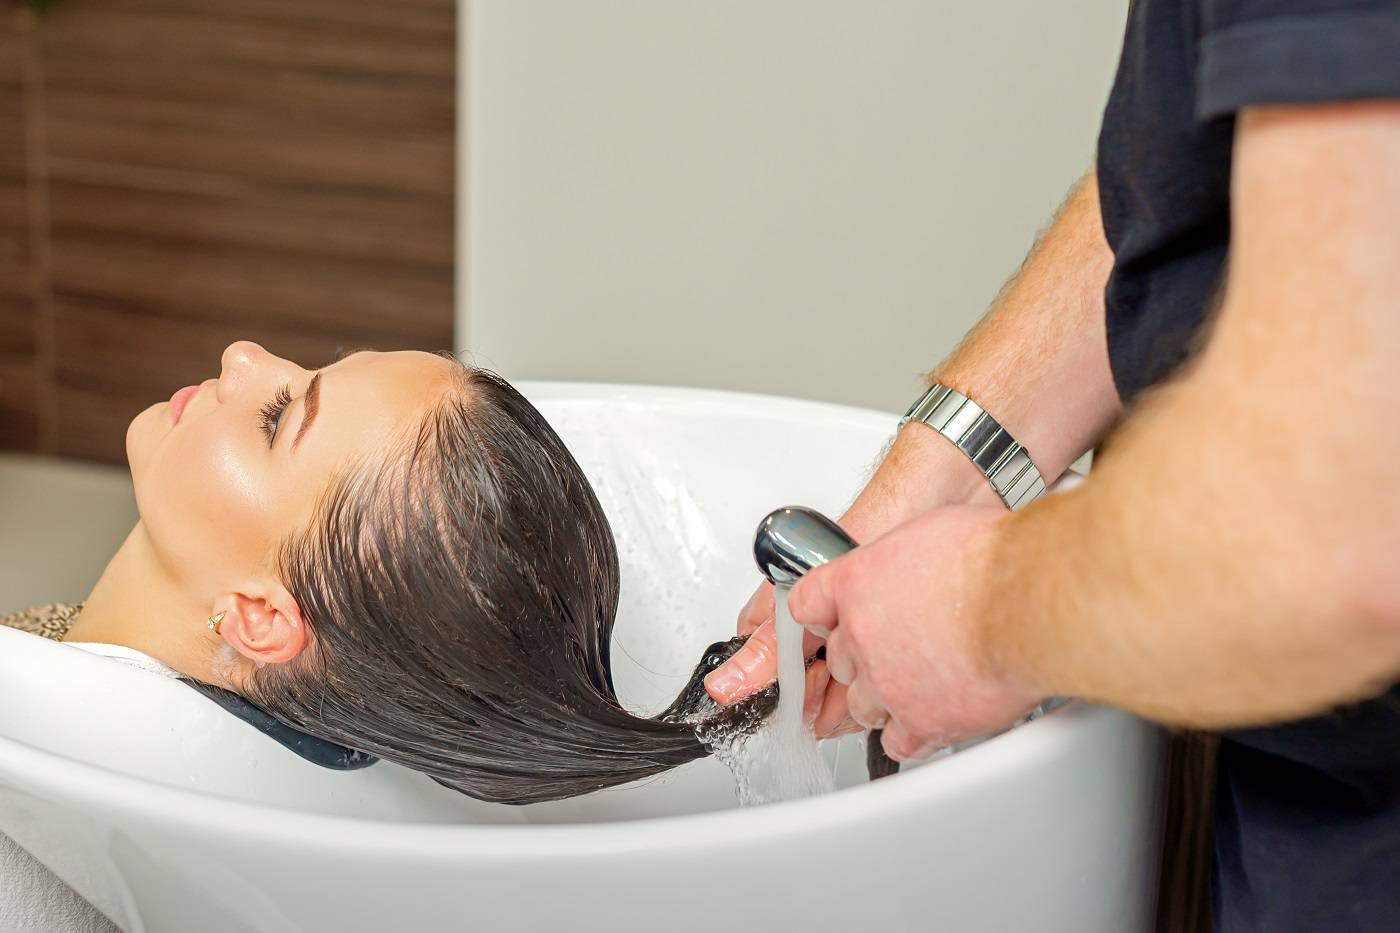 rinses hair of young woman after shampooing at hair salon